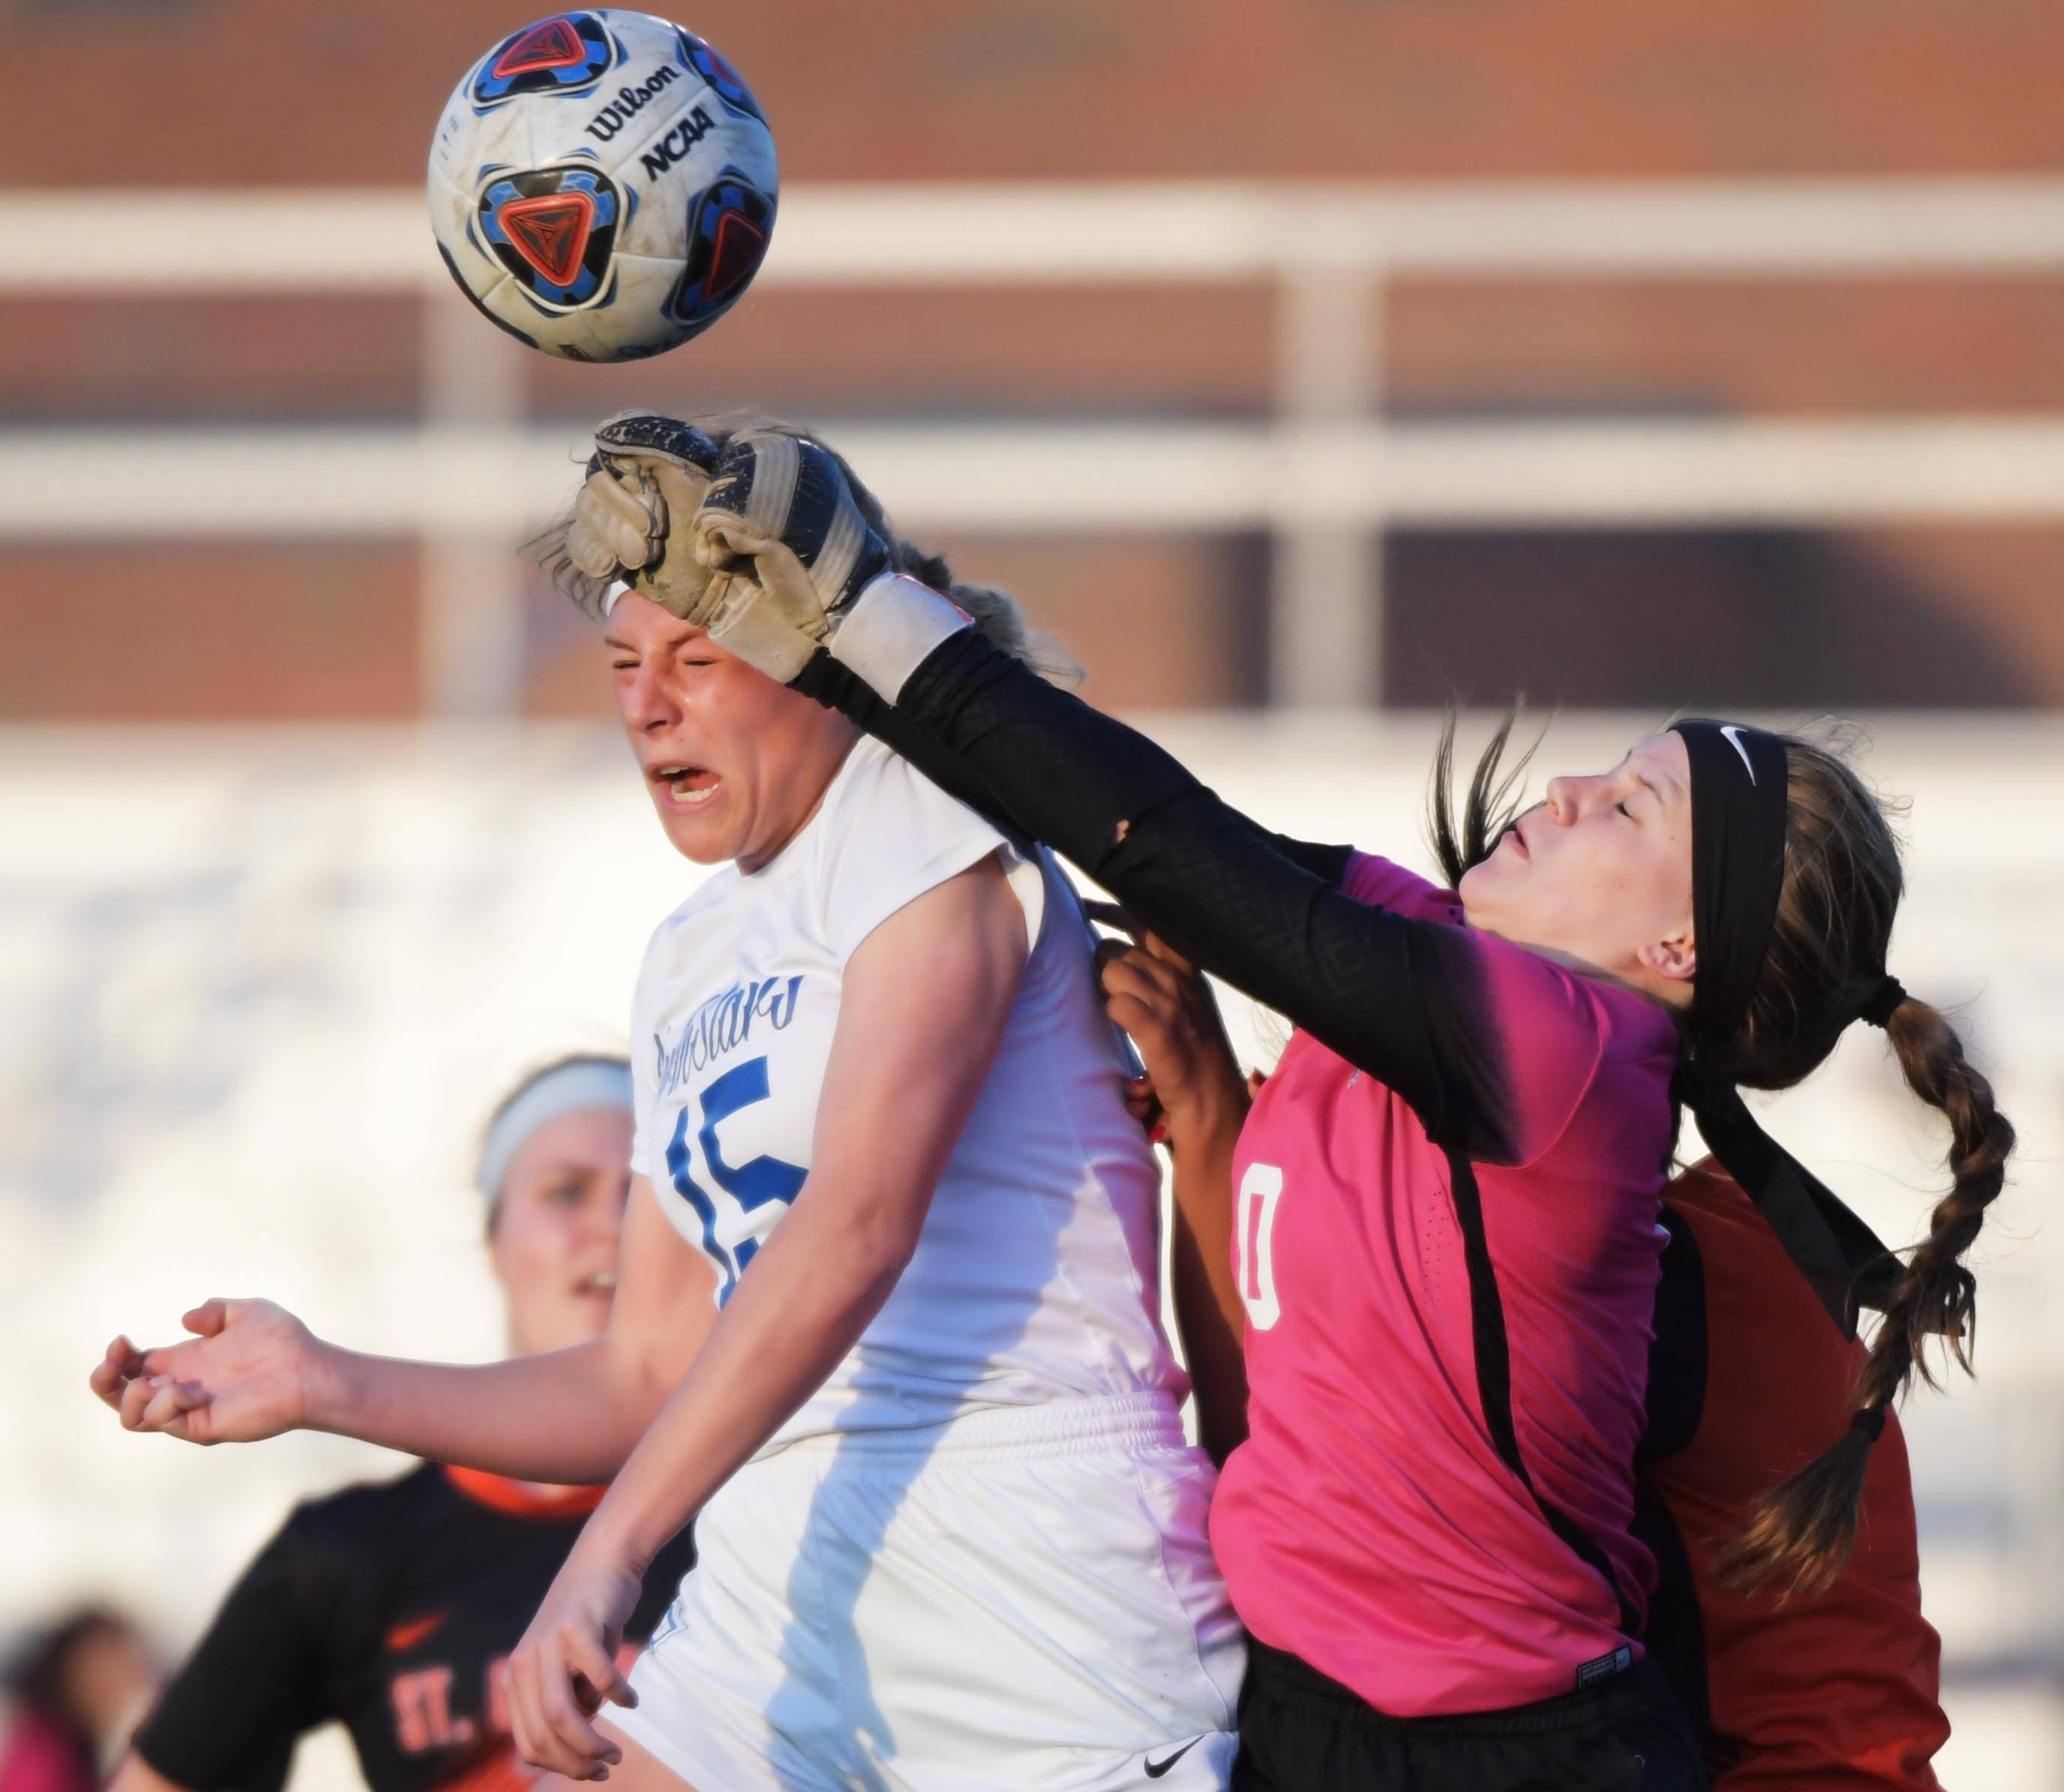 St. Charles East goalkeeper Grace Griffin punches the ball away from St. Charles North's Gia Wahlberg in a girls soccer game at North High School Tuesday.